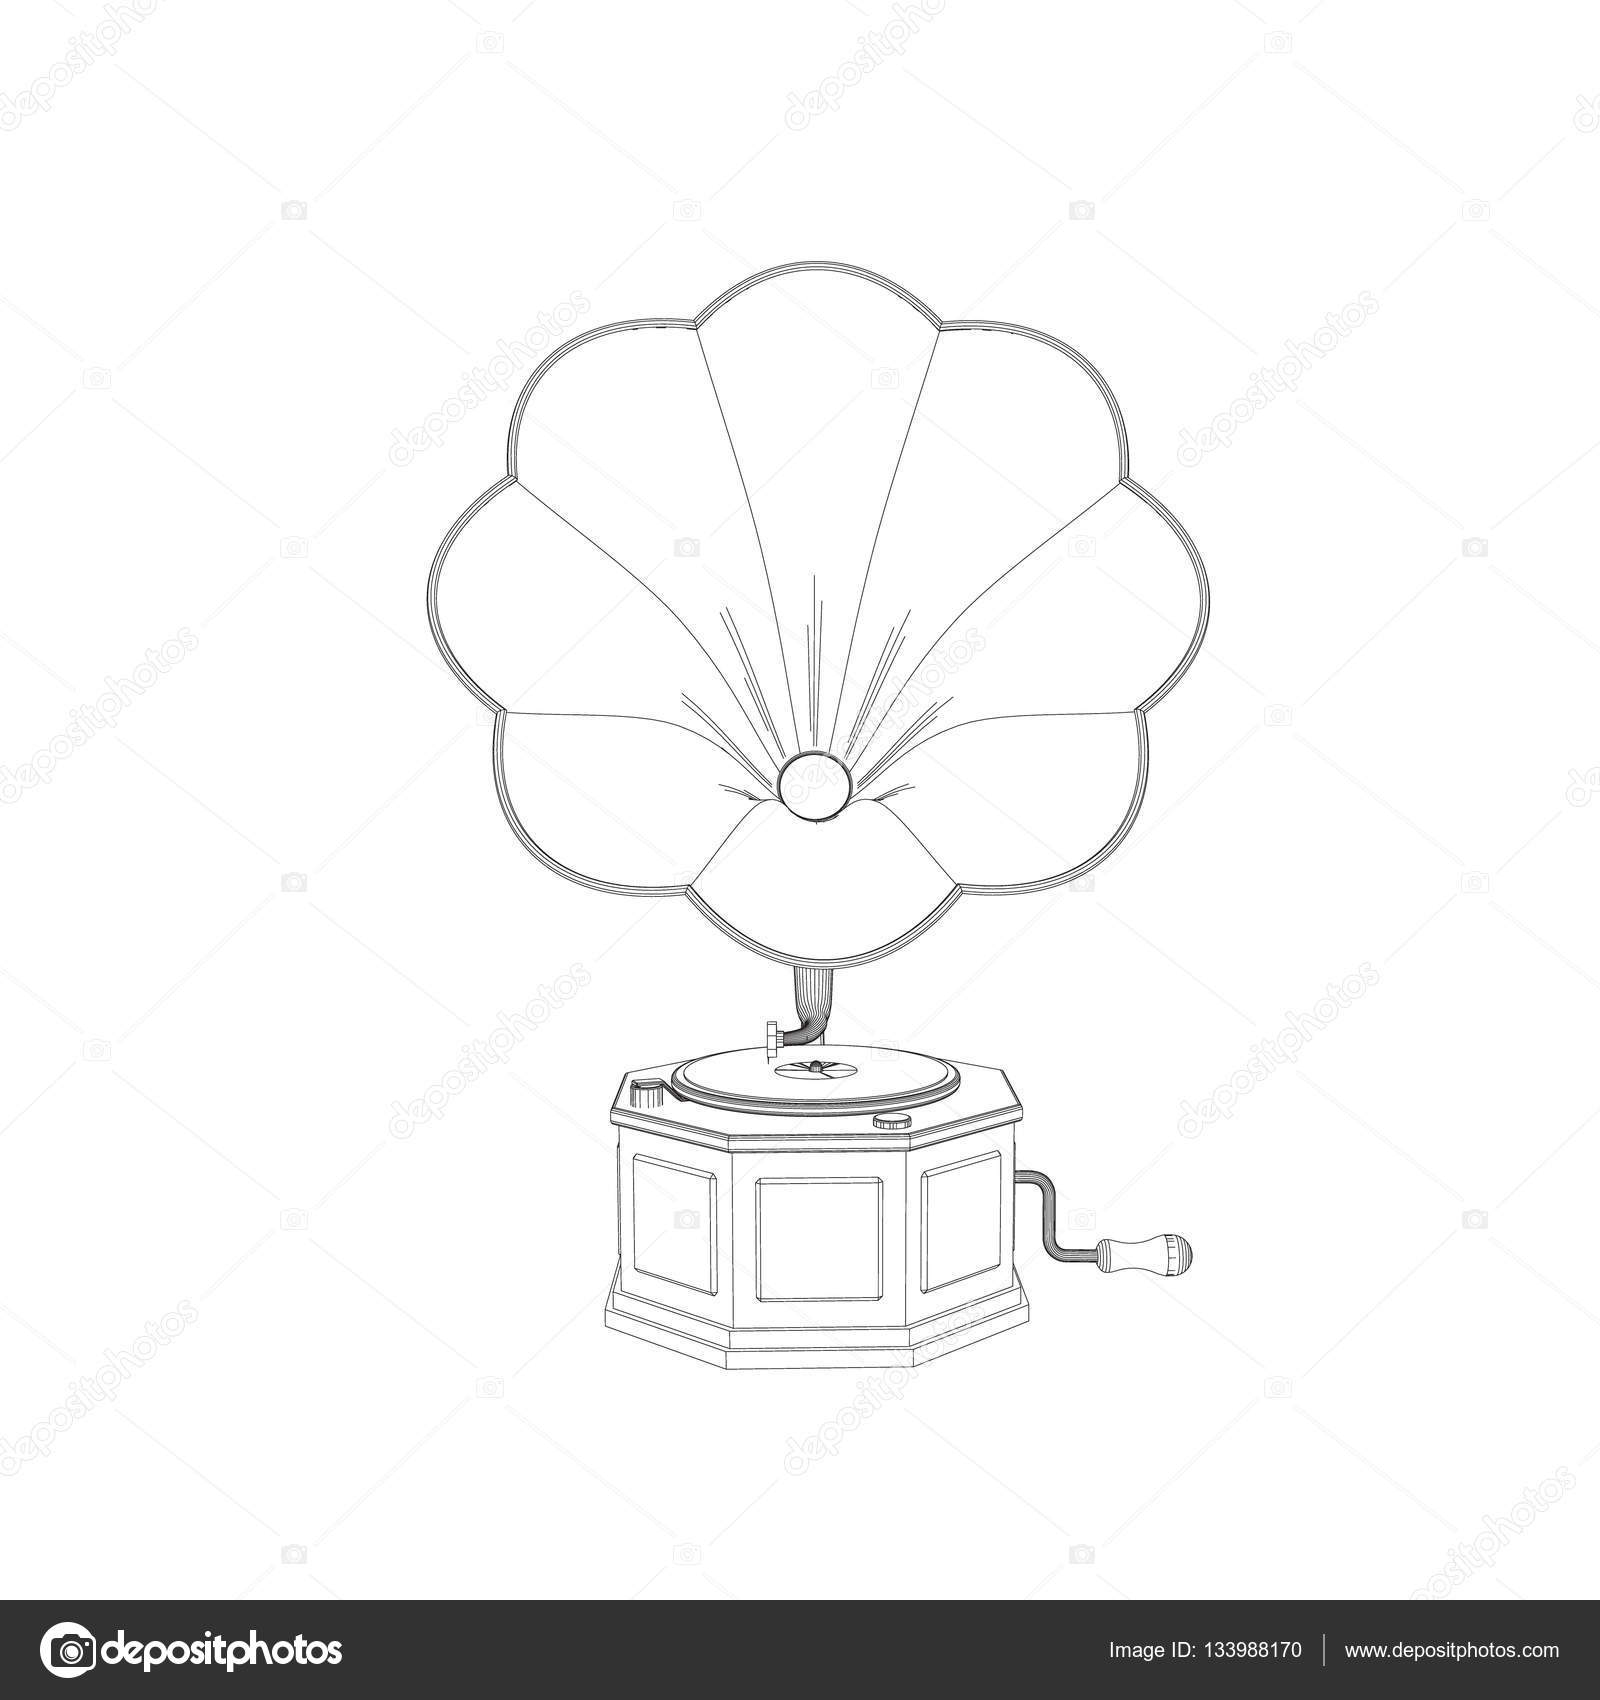 gramophone vector outline illustration front view stock vector c eestingnef 133988170 https depositphotos com 133988170 stock illustration gramophone vector outline illustration front html